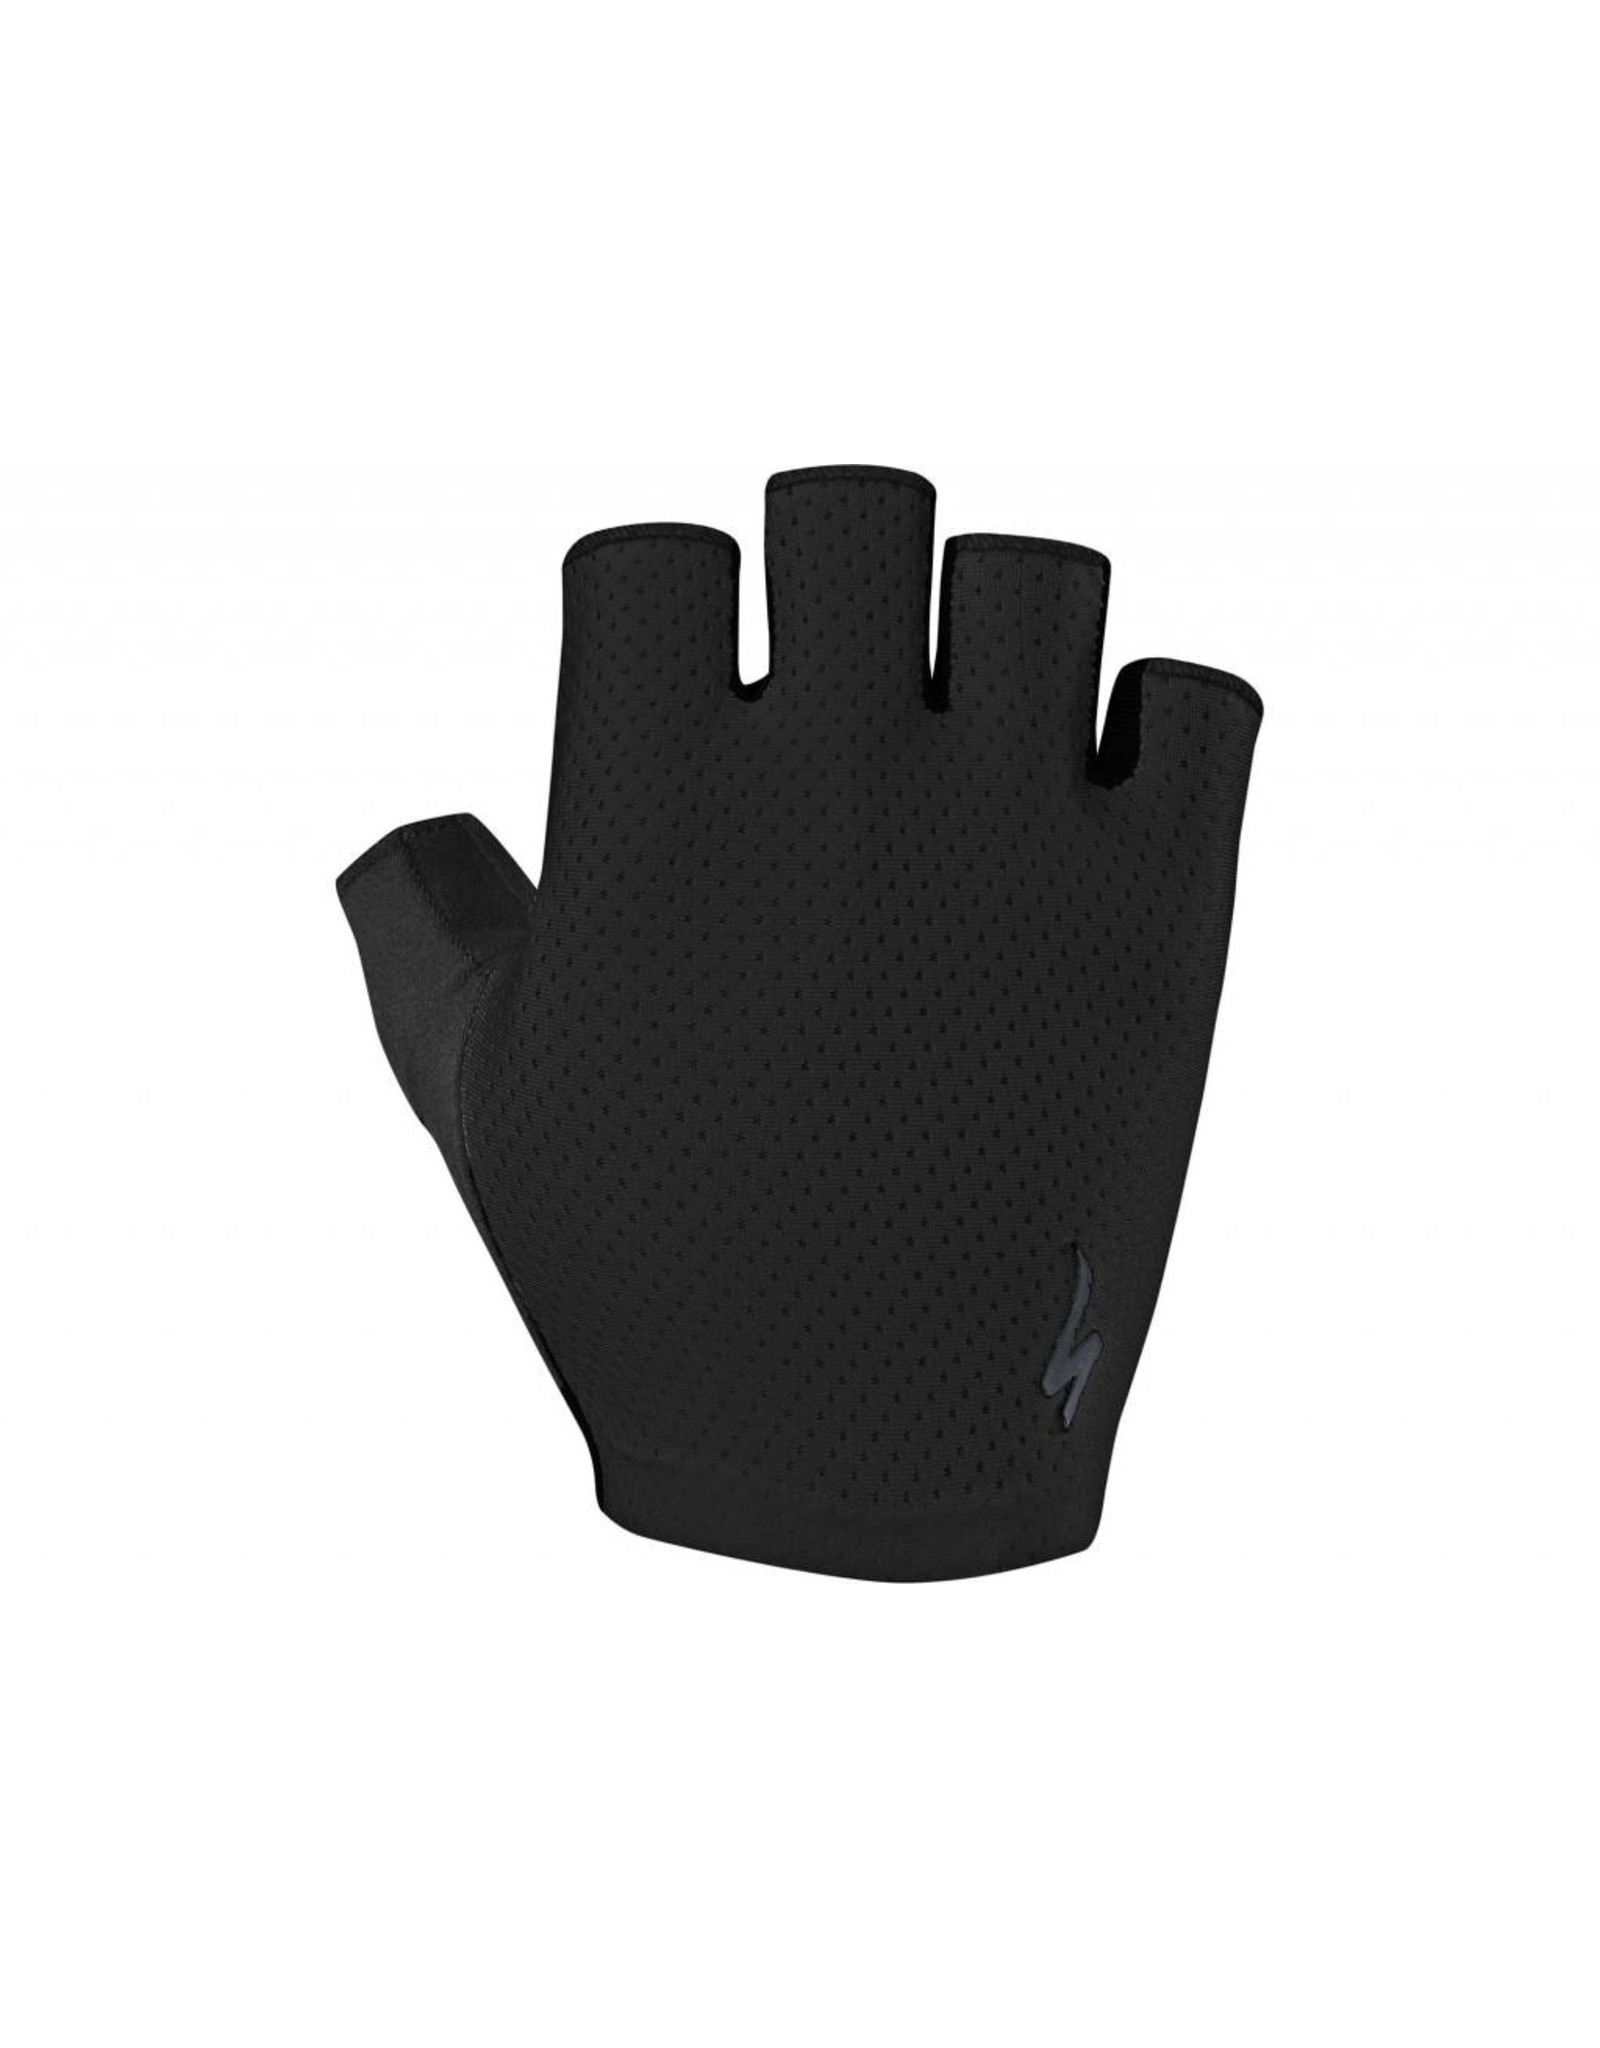 SPECIALIZED Specialized BG Grail Glove - Black - Small